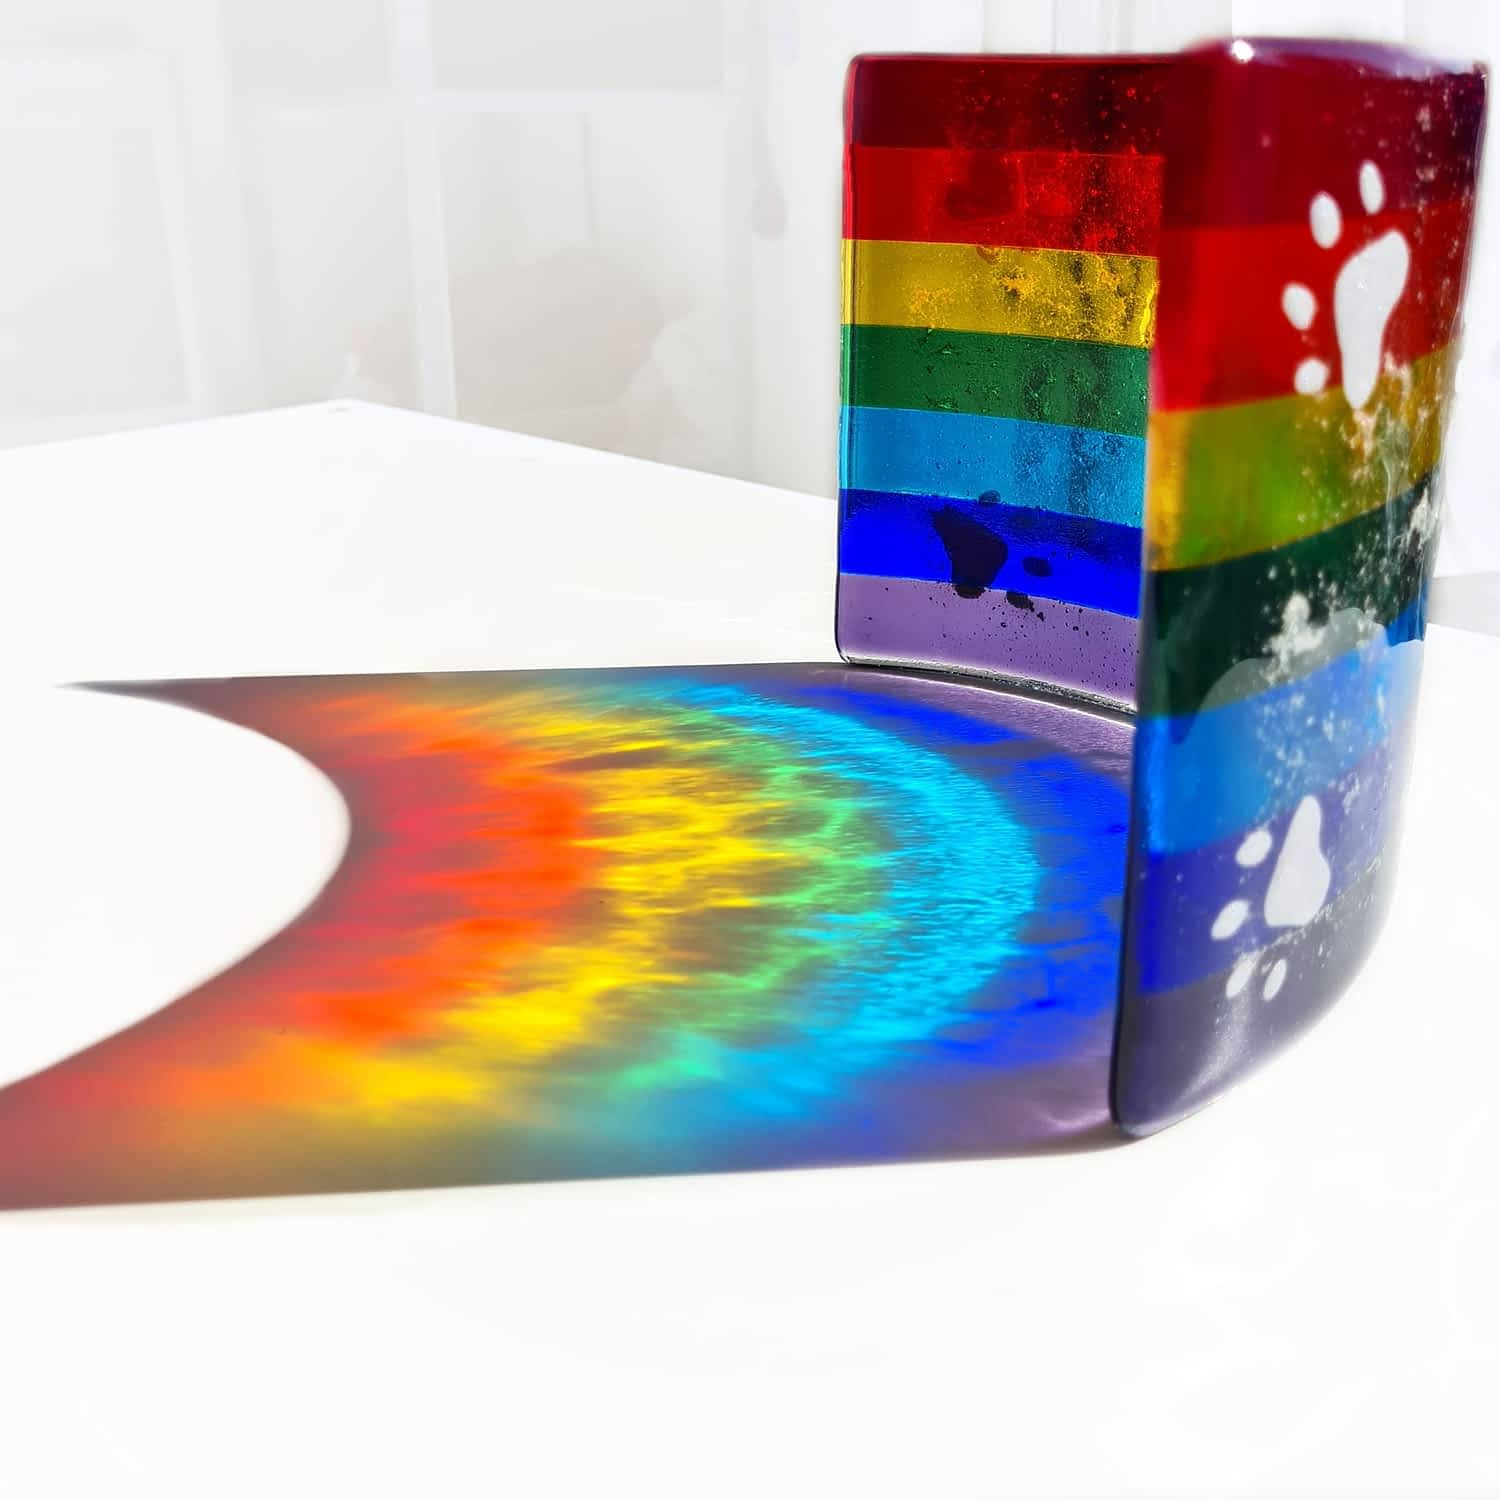 A Large rainbow bridge with cremation ashes fused inside, resting on a white background with the sun projecting a beautiful rainbow shadow.